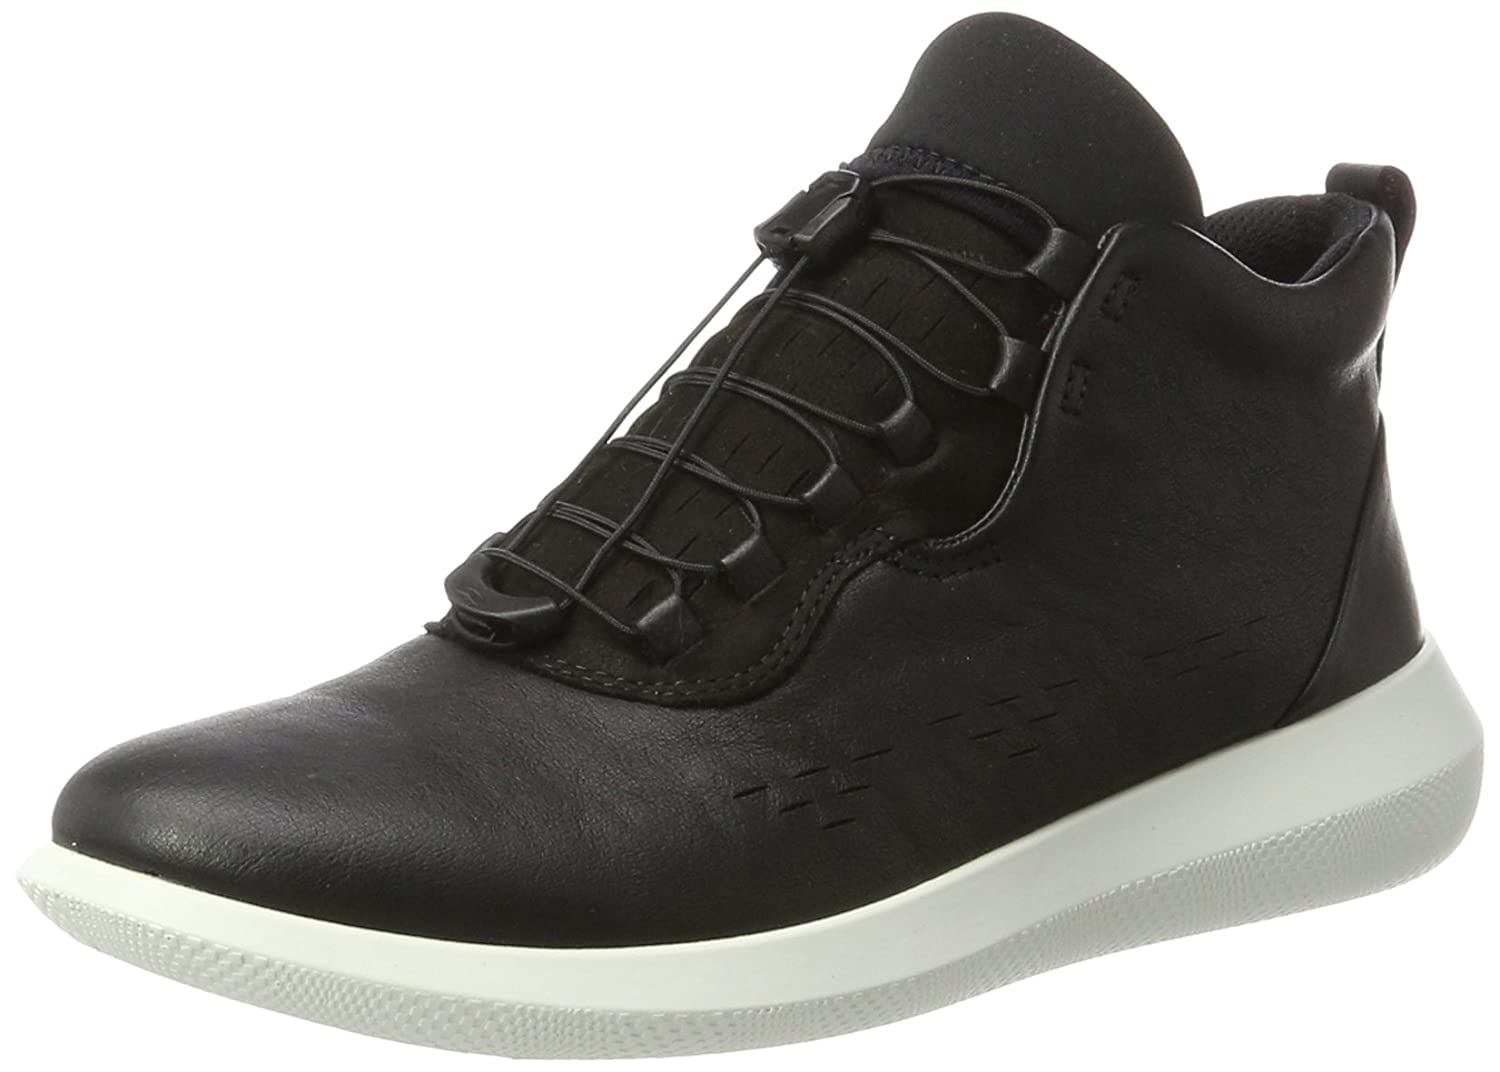 ECCO Women's Scinapse High Top Fashion Sneaker B072B8T33J 36 EU/5-5.5 M US|Black/Black